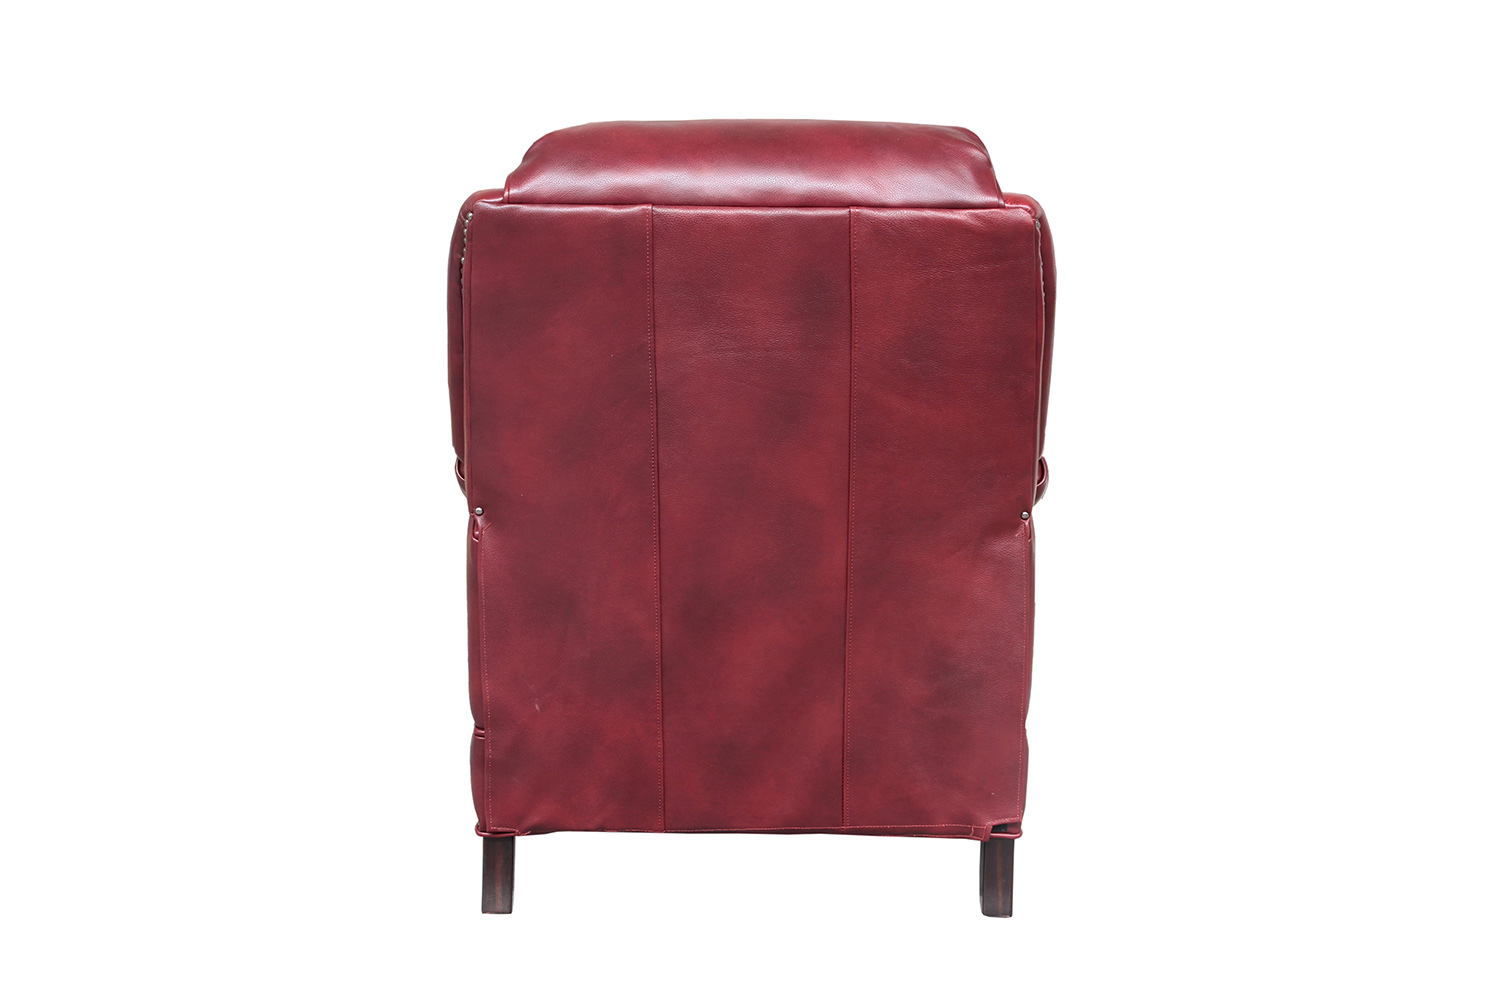 Barcalounger Ashebrooke Recliner Chair - Wenlock Carmine/All Leather